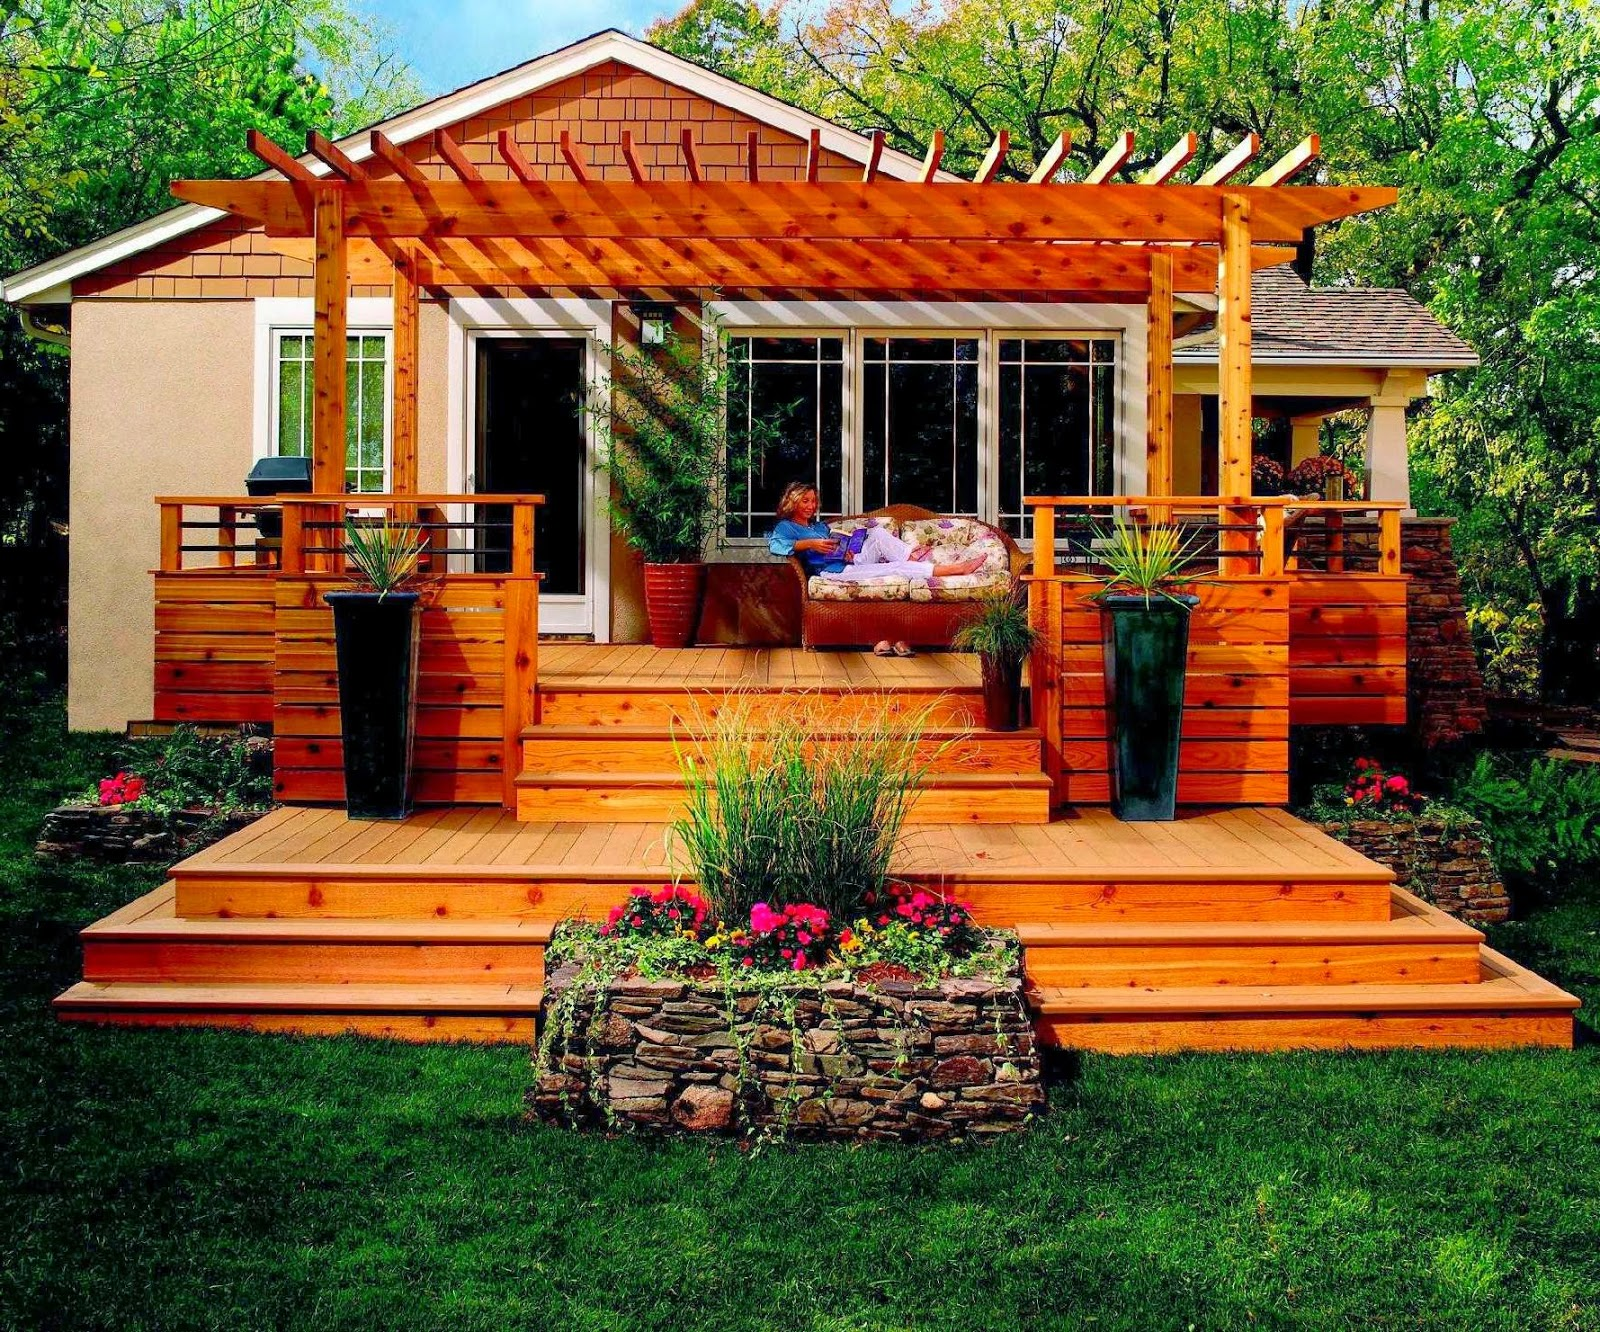 Backyard Deck Ideas For Small Yards : Awesome backyard deck design  Backyard Design Ideas